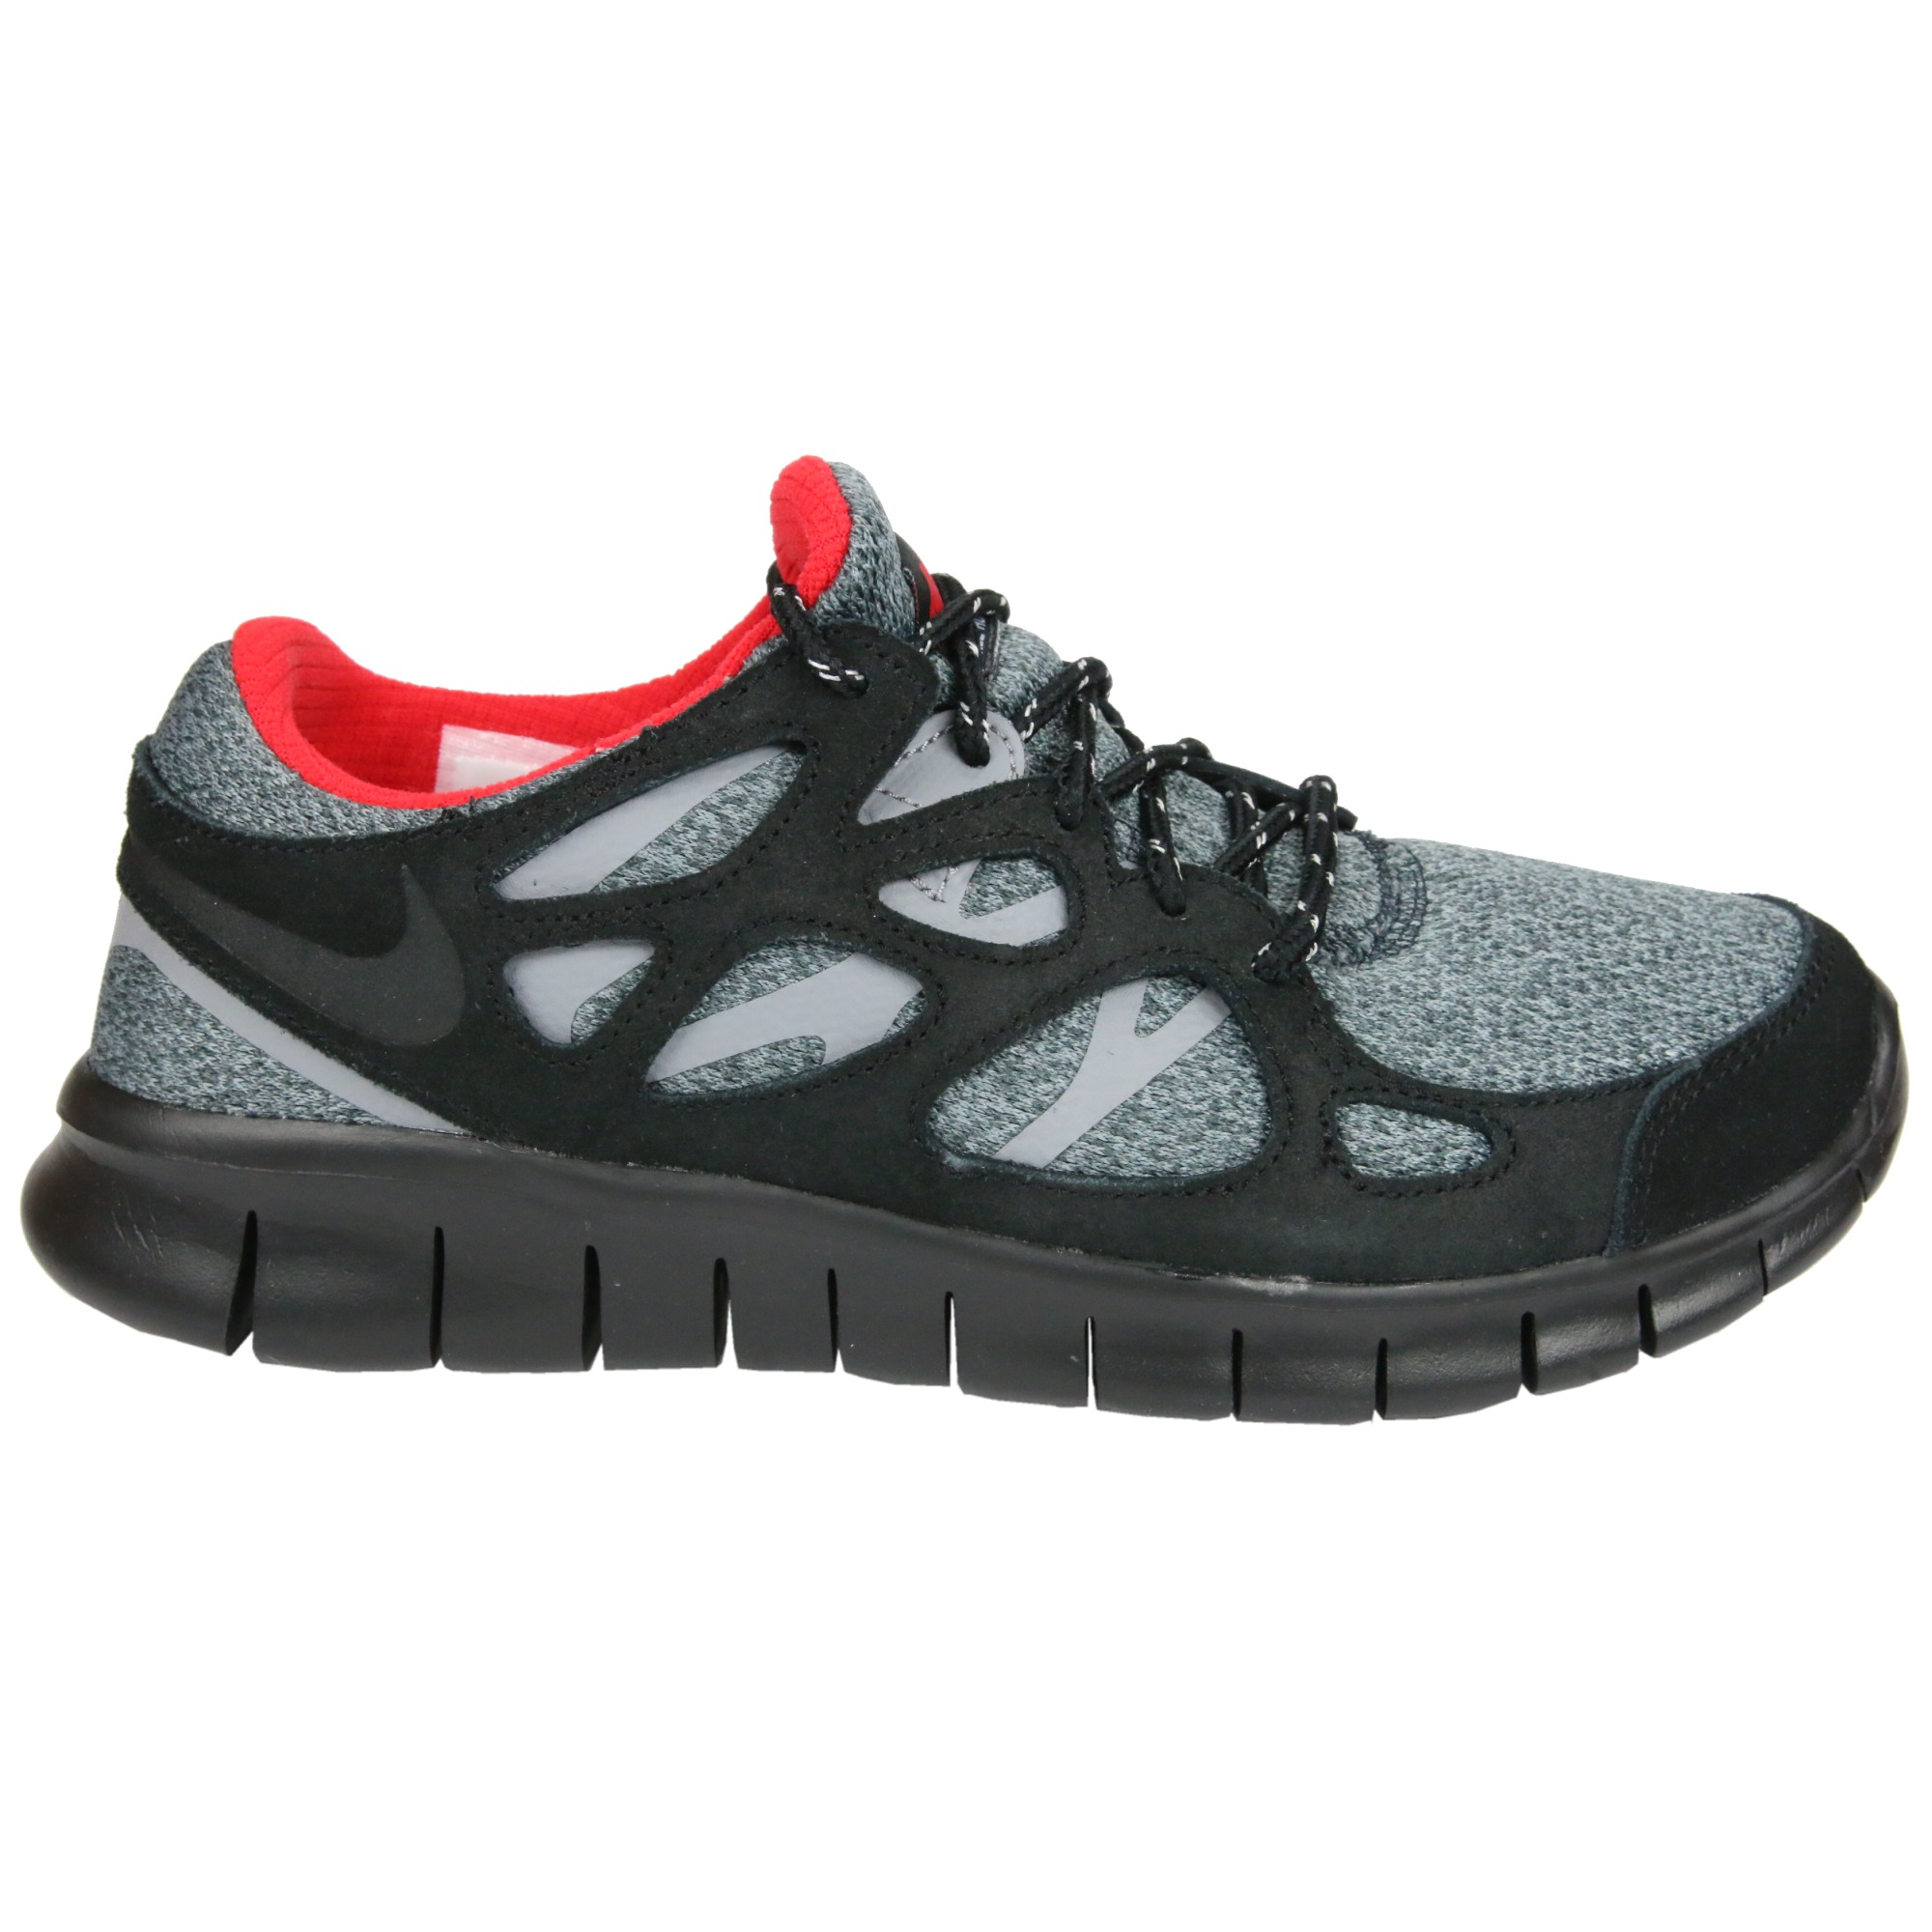 nike free run 2 schuhe laufschuhe sportschuhe. Black Bedroom Furniture Sets. Home Design Ideas